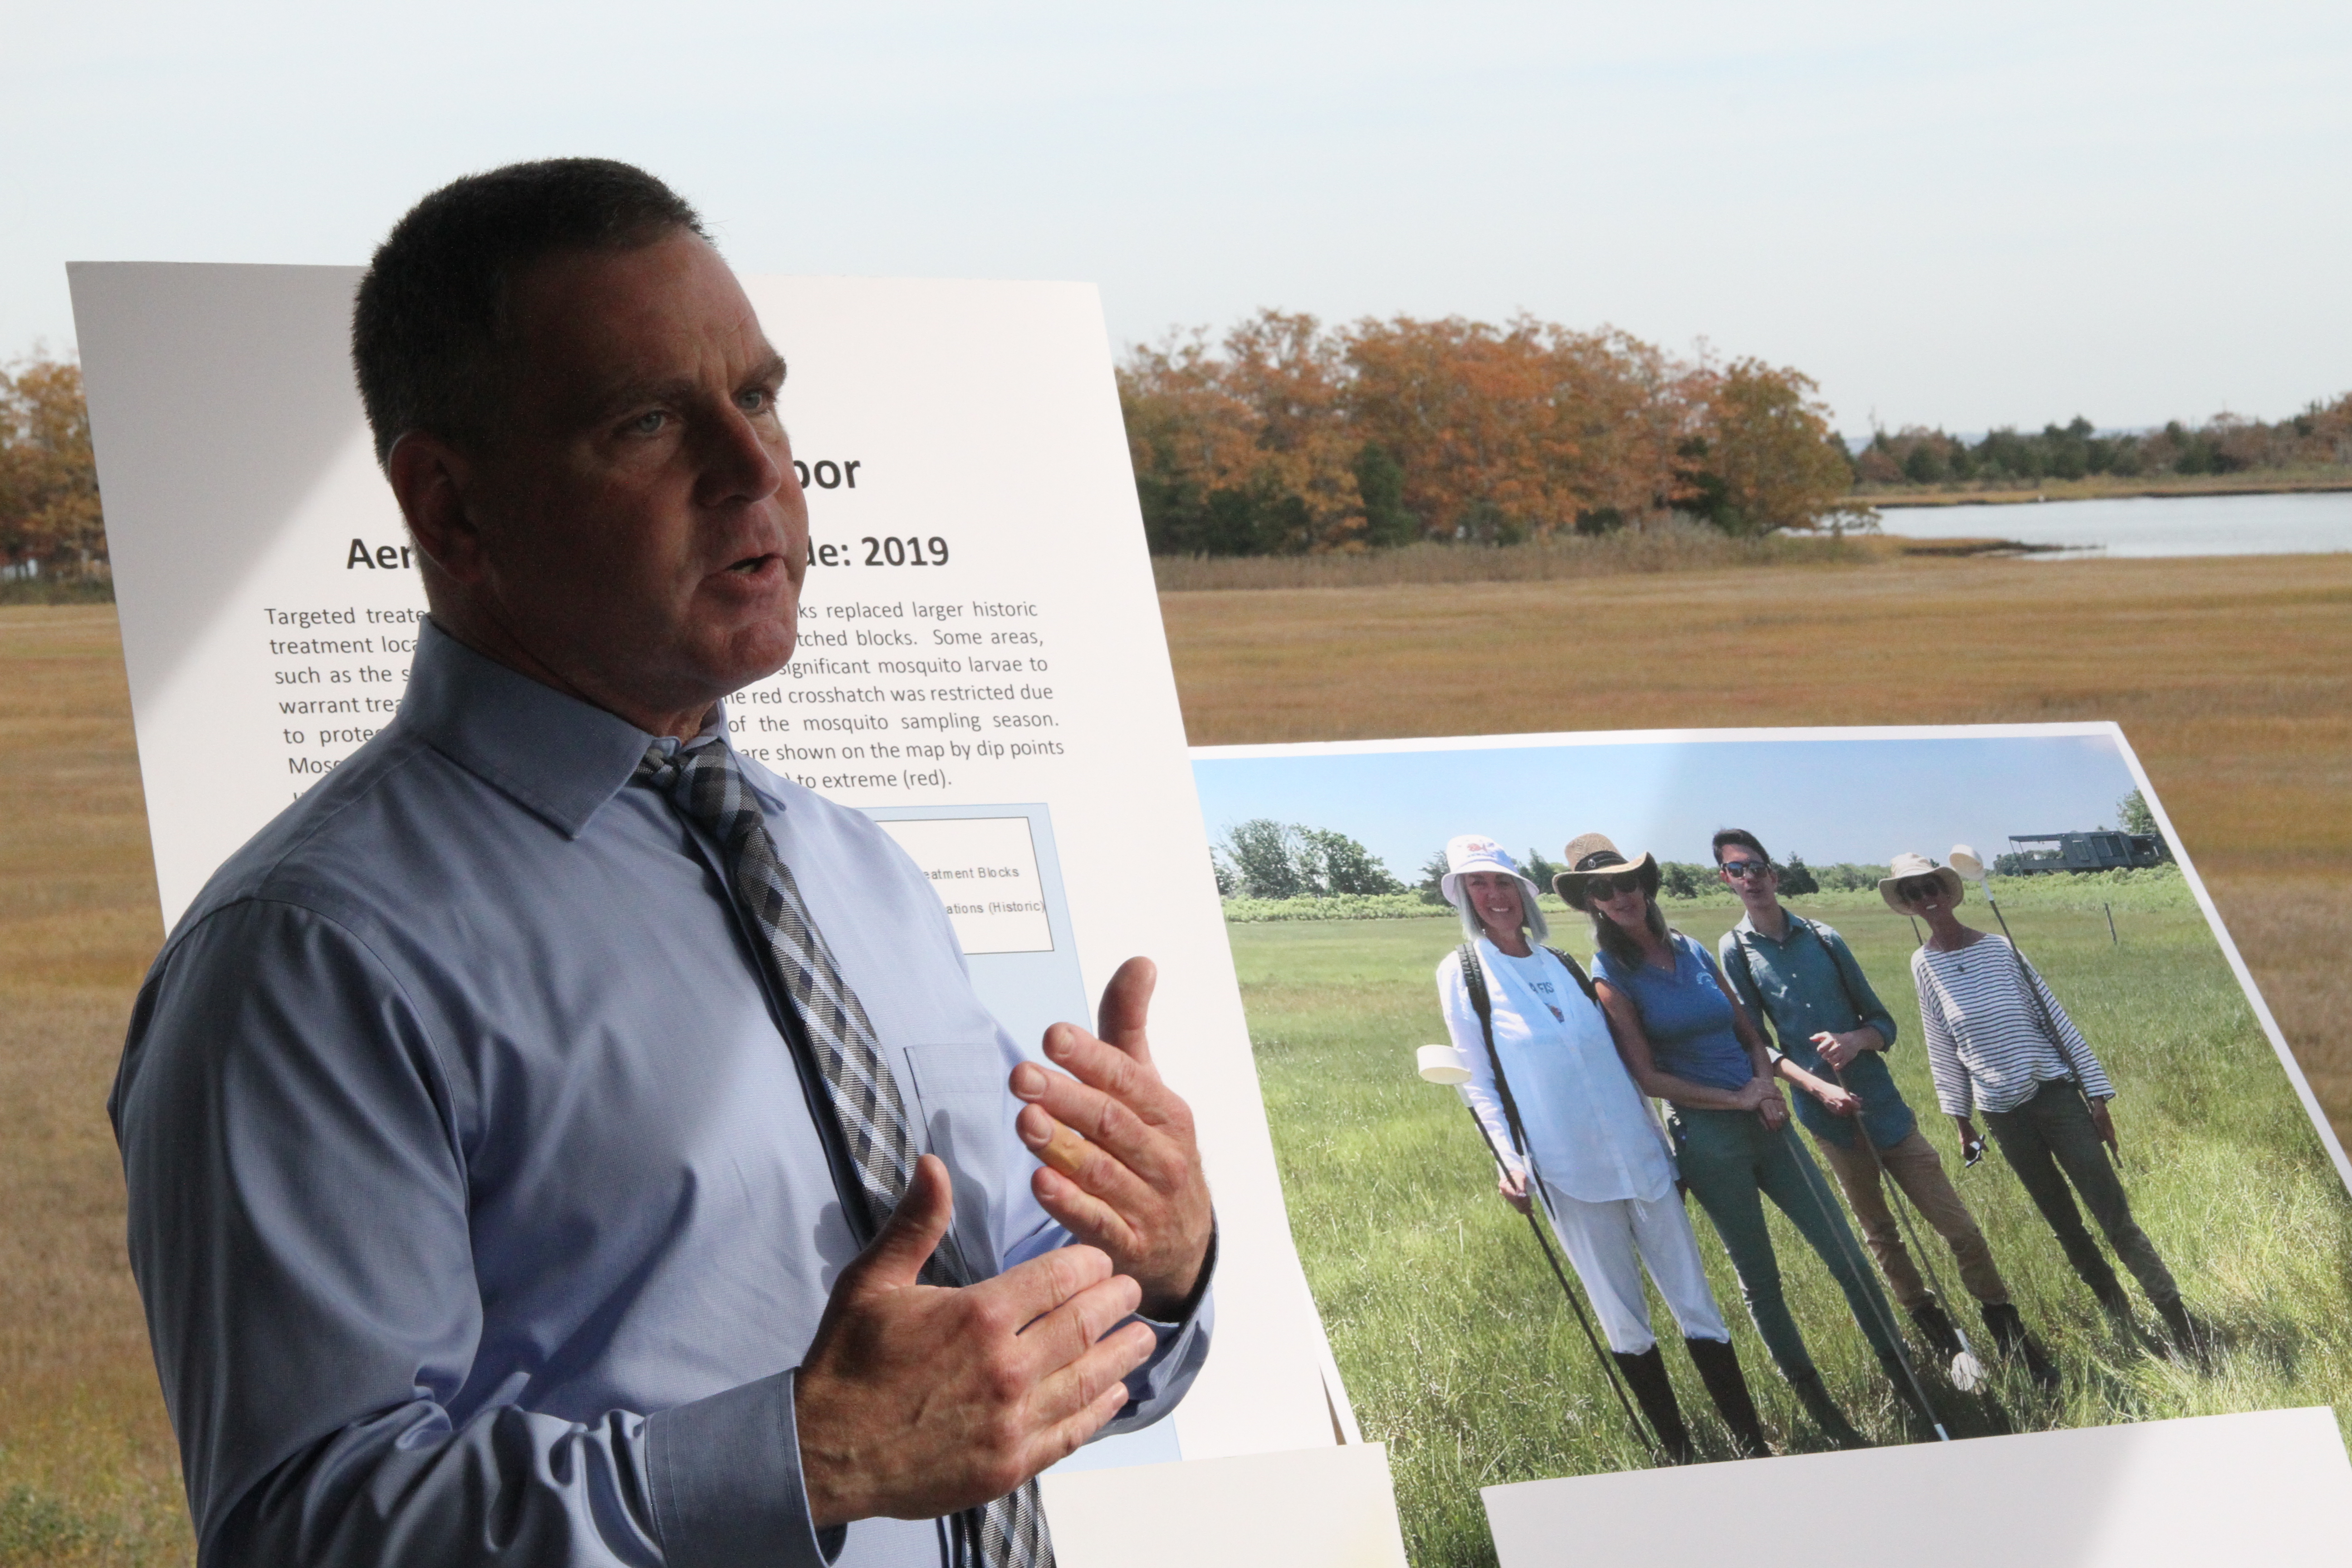 Suffolk County and East Hampton Town officials this week applauded the benefits that an East Hampton Town Trustees-led effort to reduce mosquito spraying over Accabonac Harbor has brought.